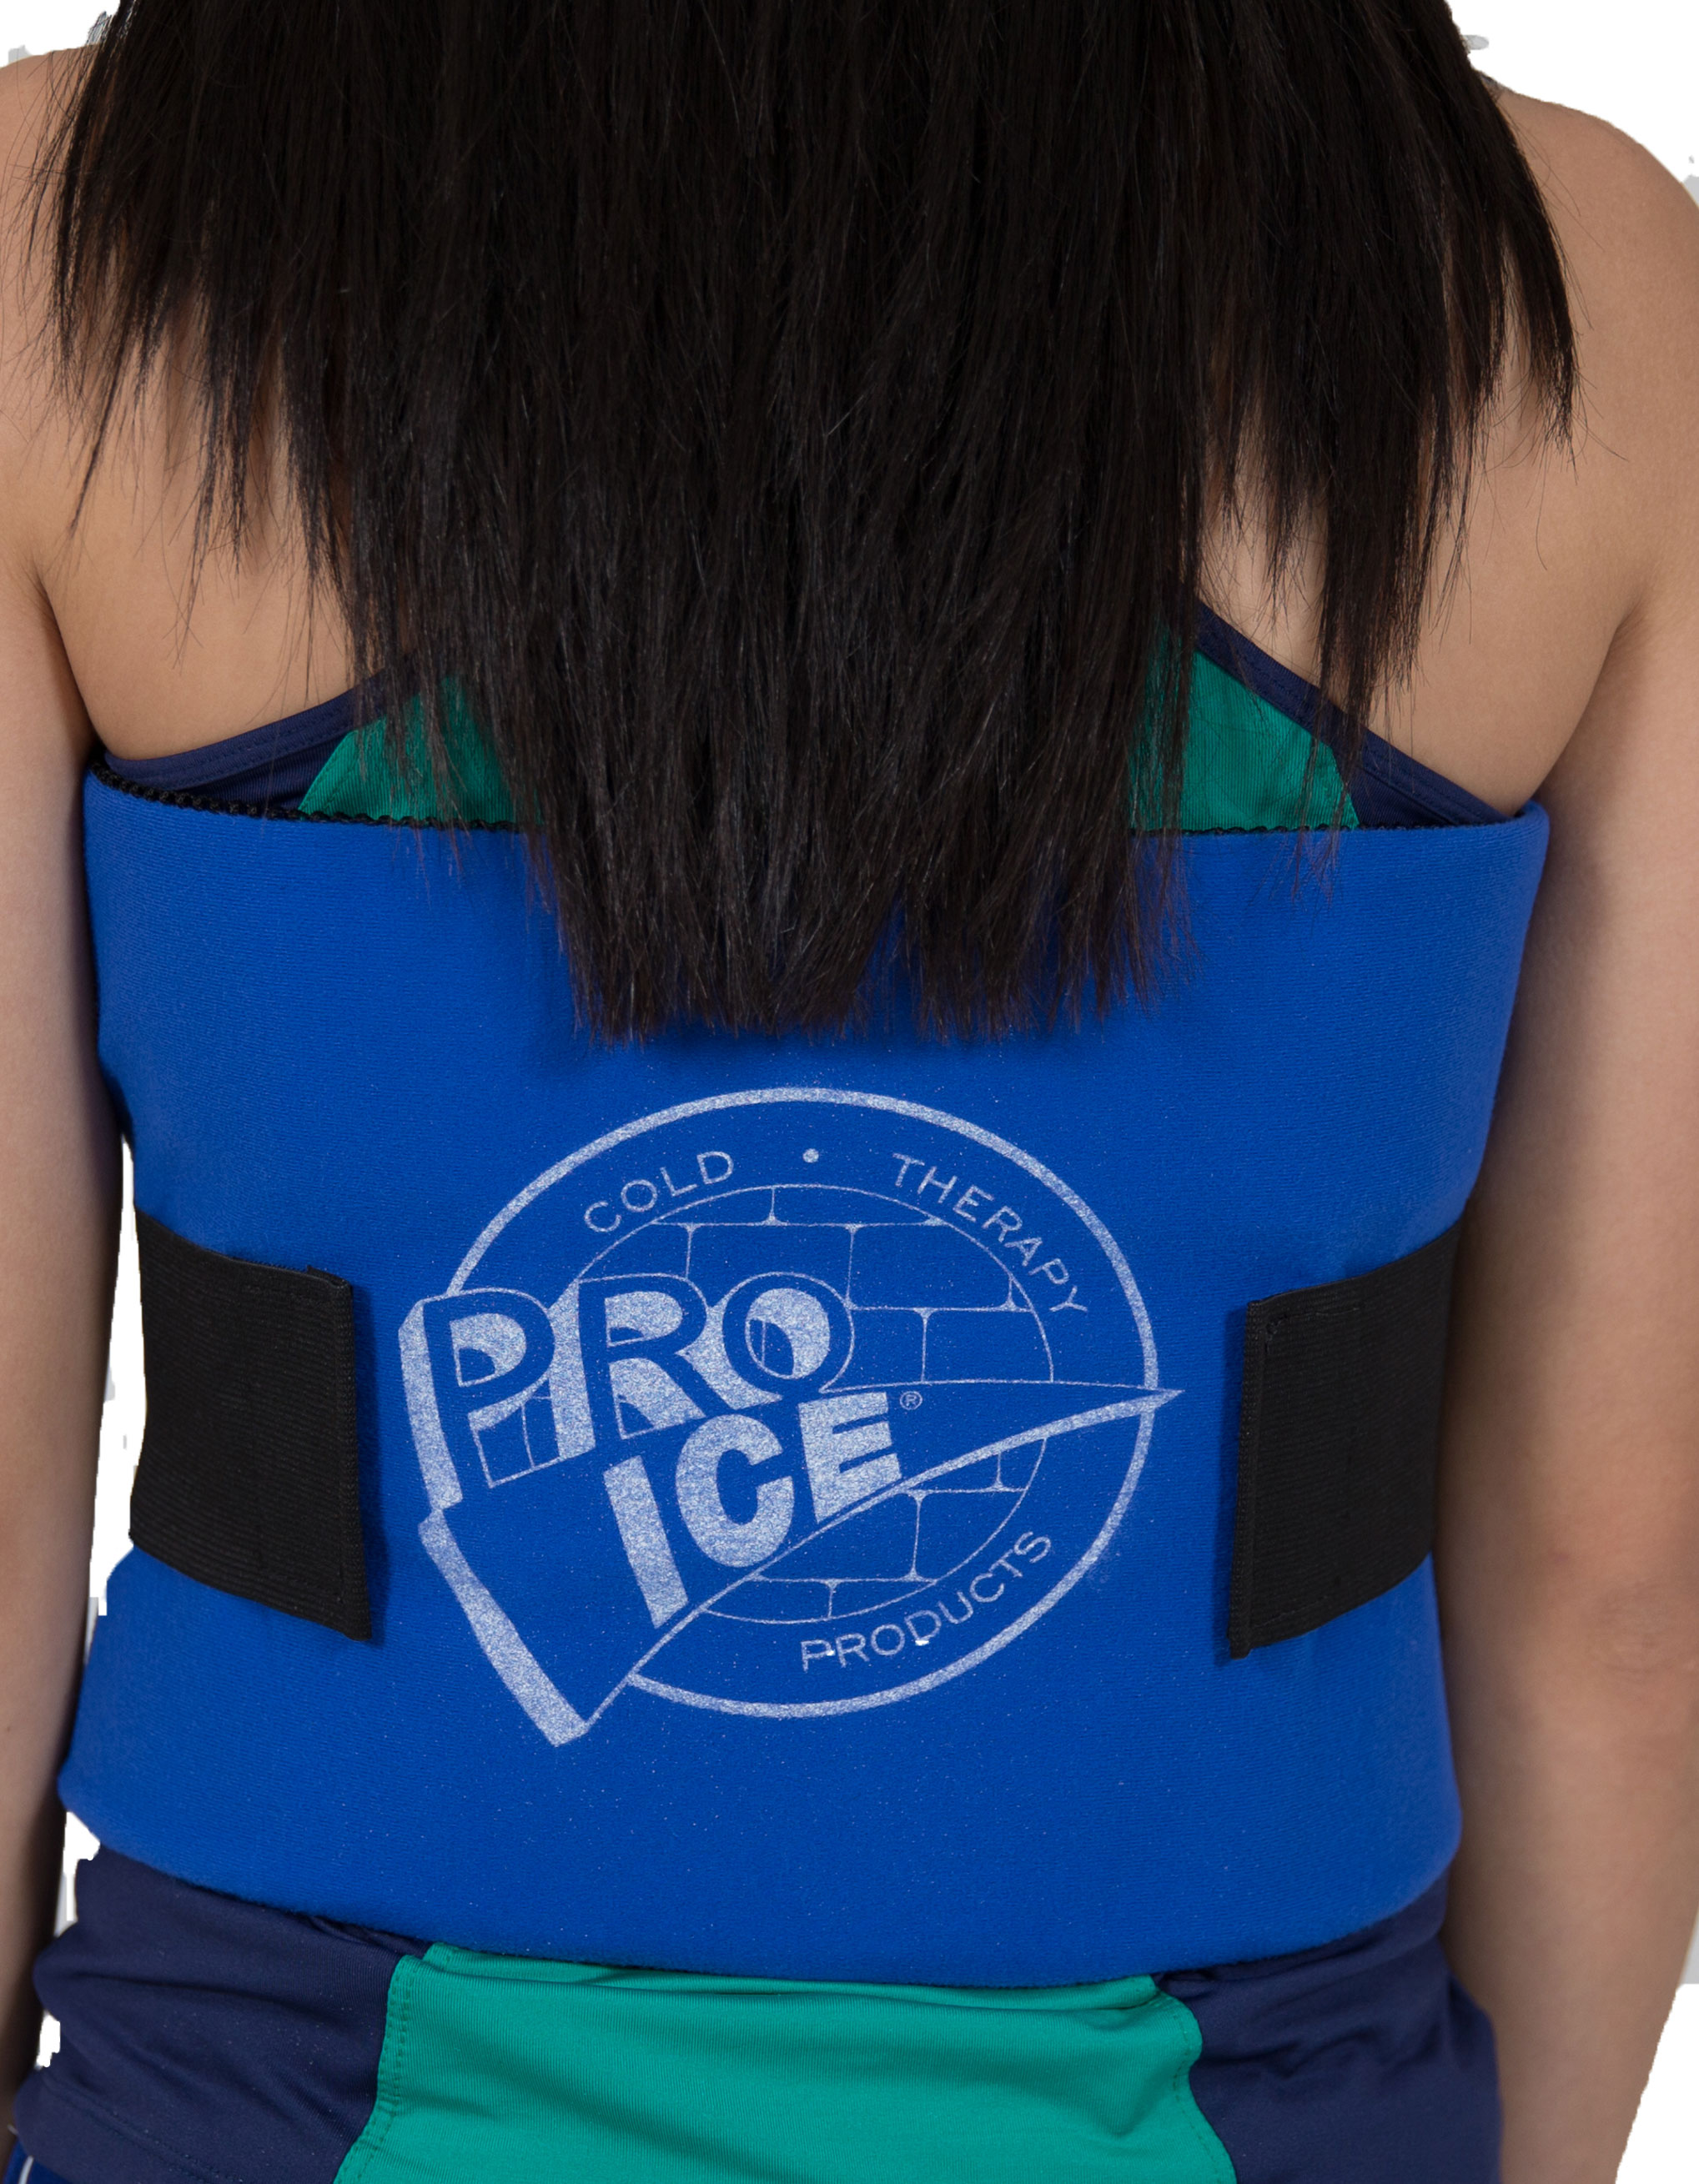 Univeral Ice Pack For The Mid Back and Many Other Body Areas by Pro Ice, pi260